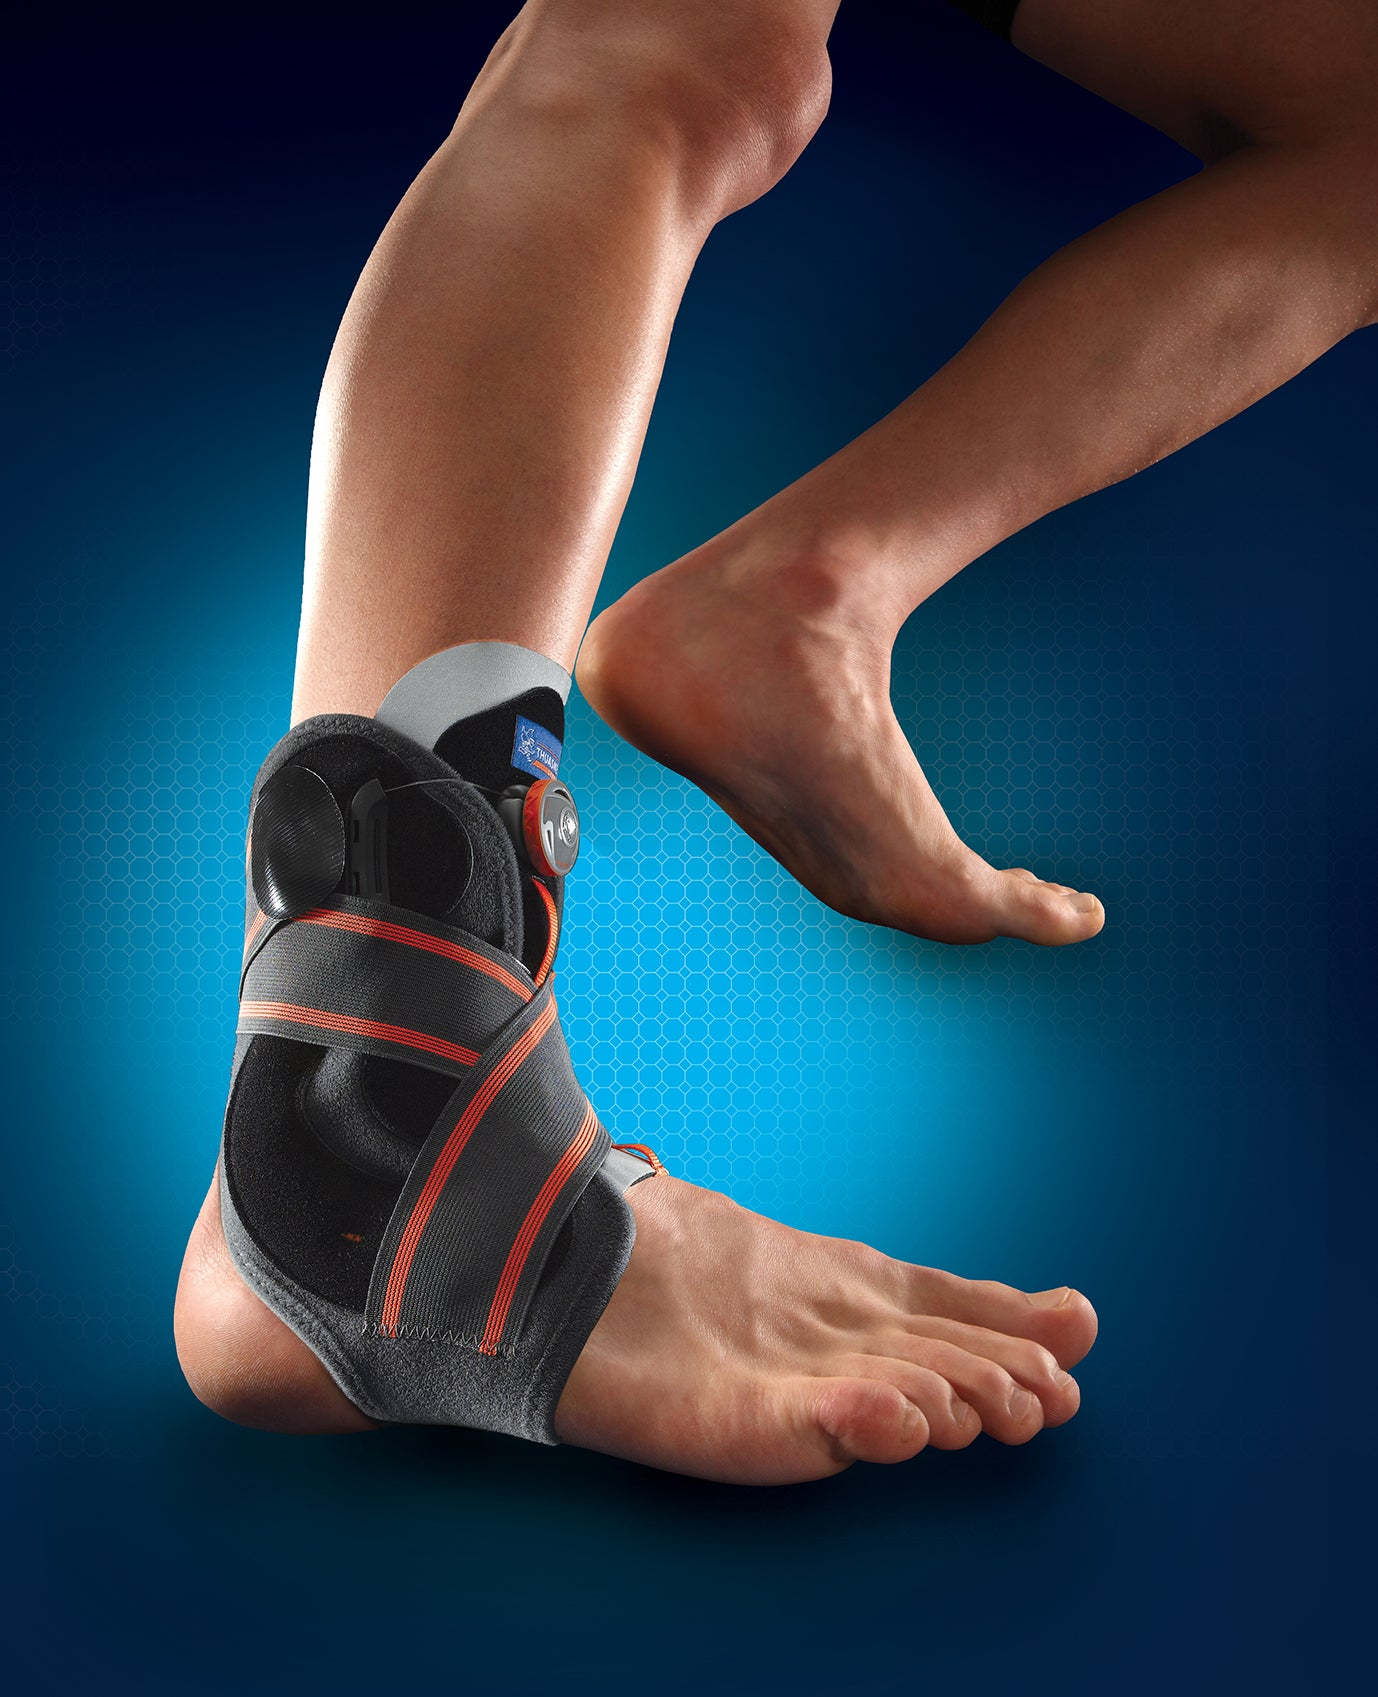 Thuasne Sport Stabilising Ankle Brace with BOA® closure system